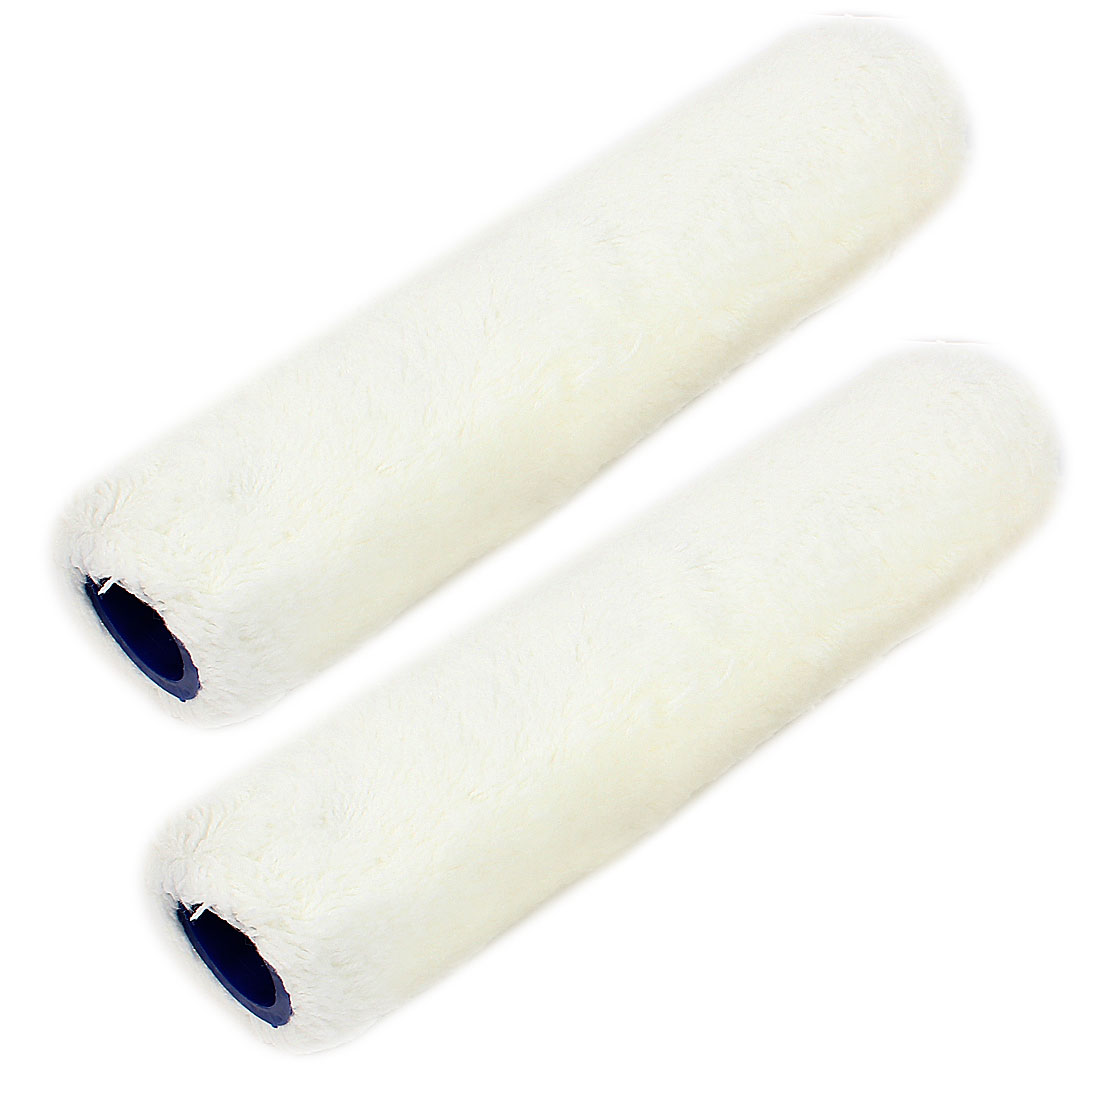 "2pcs House Floor Wall Decoration Paint Roller Covers White 10"" Length"